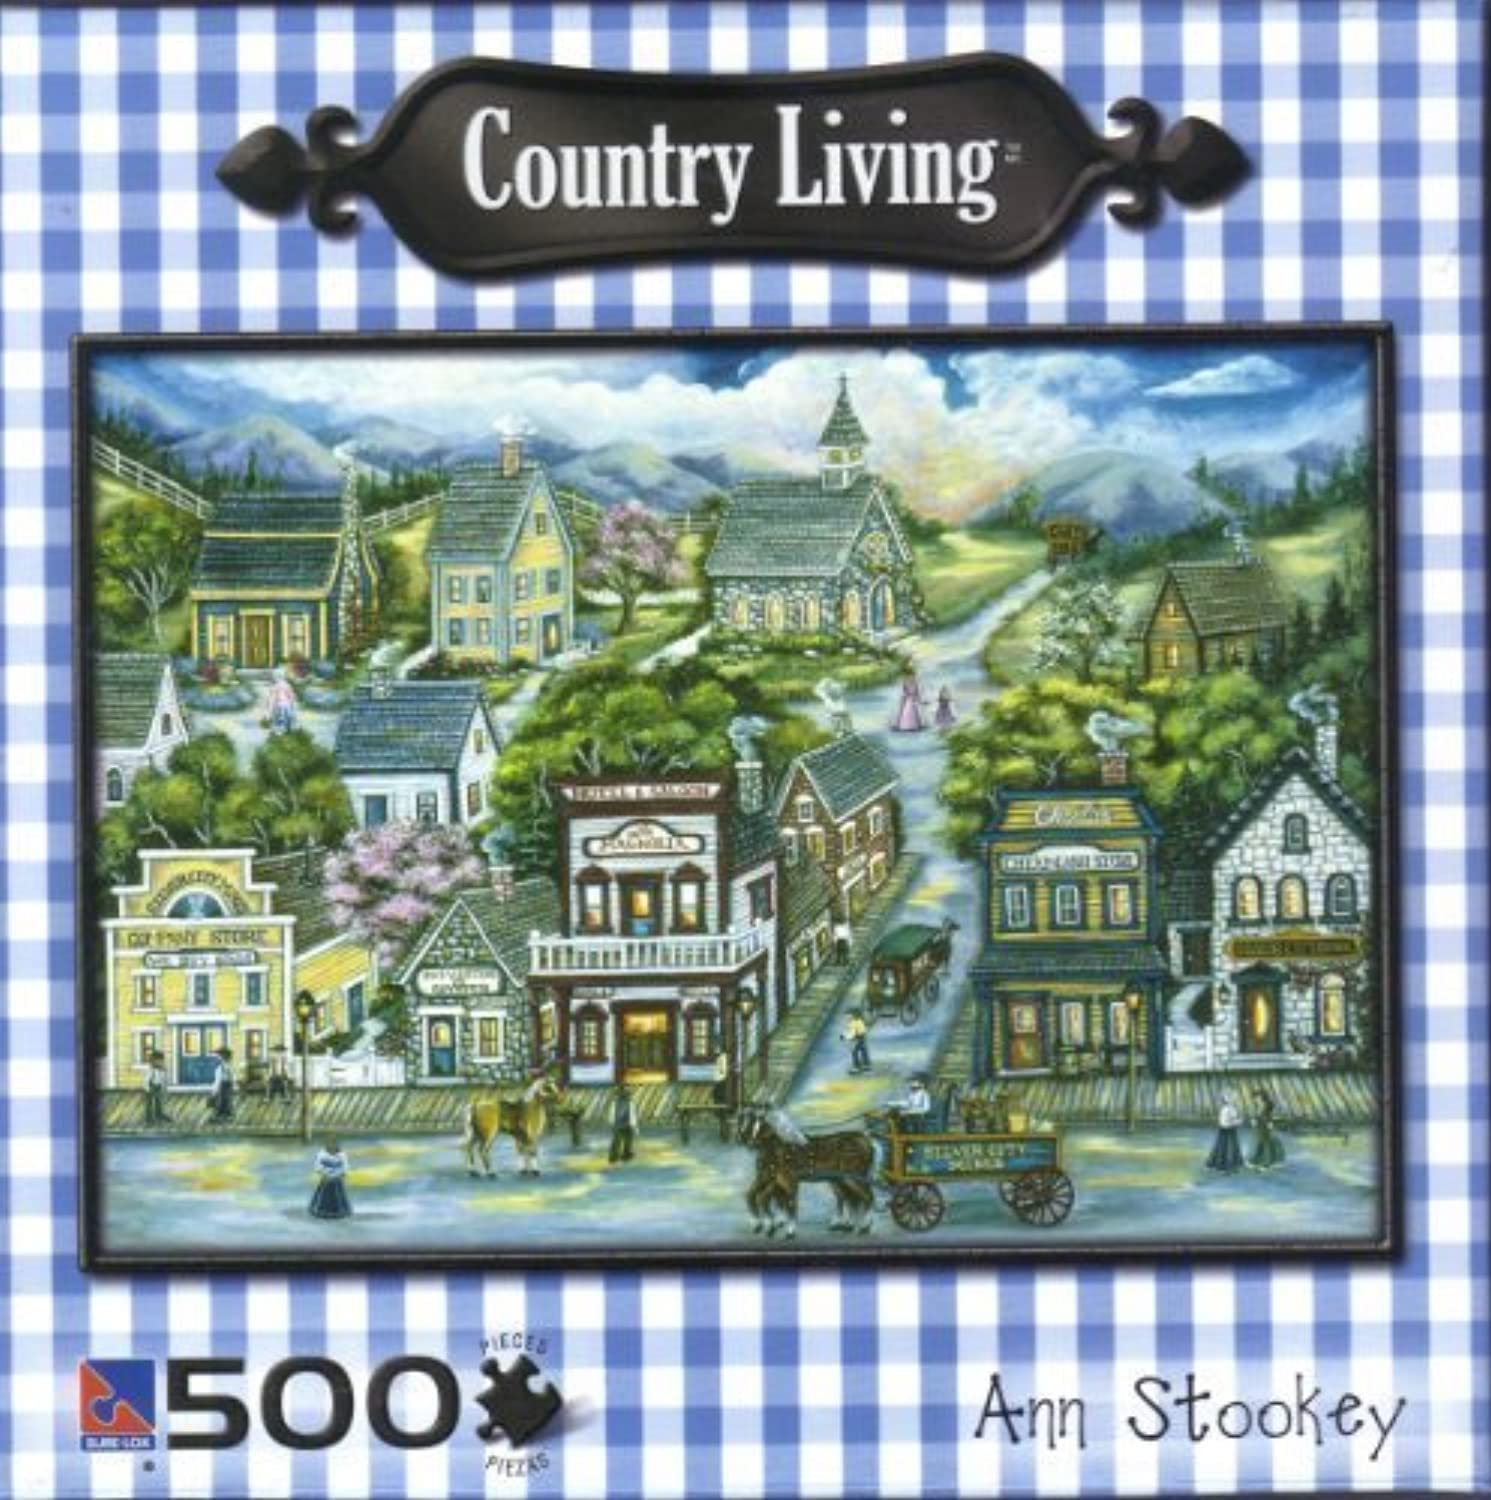 Ann Stookey Country Living 500 Piece Jigsaw Puzzle  Silber City 19  x 14  by Sure-Lox